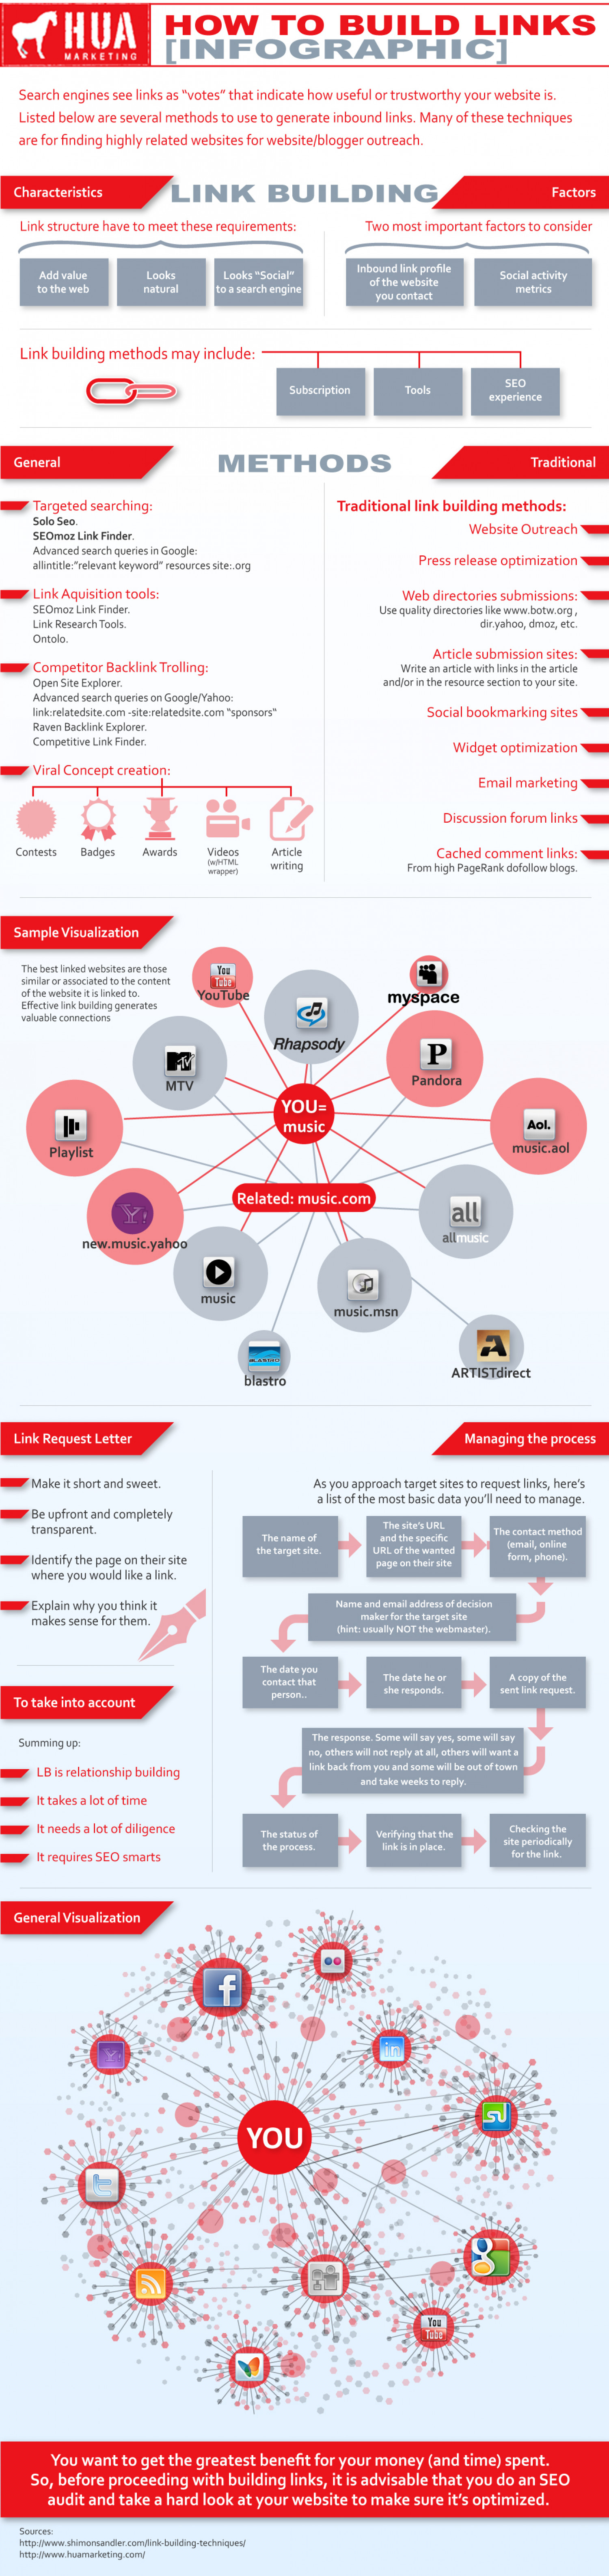 How to Build Links Infographic